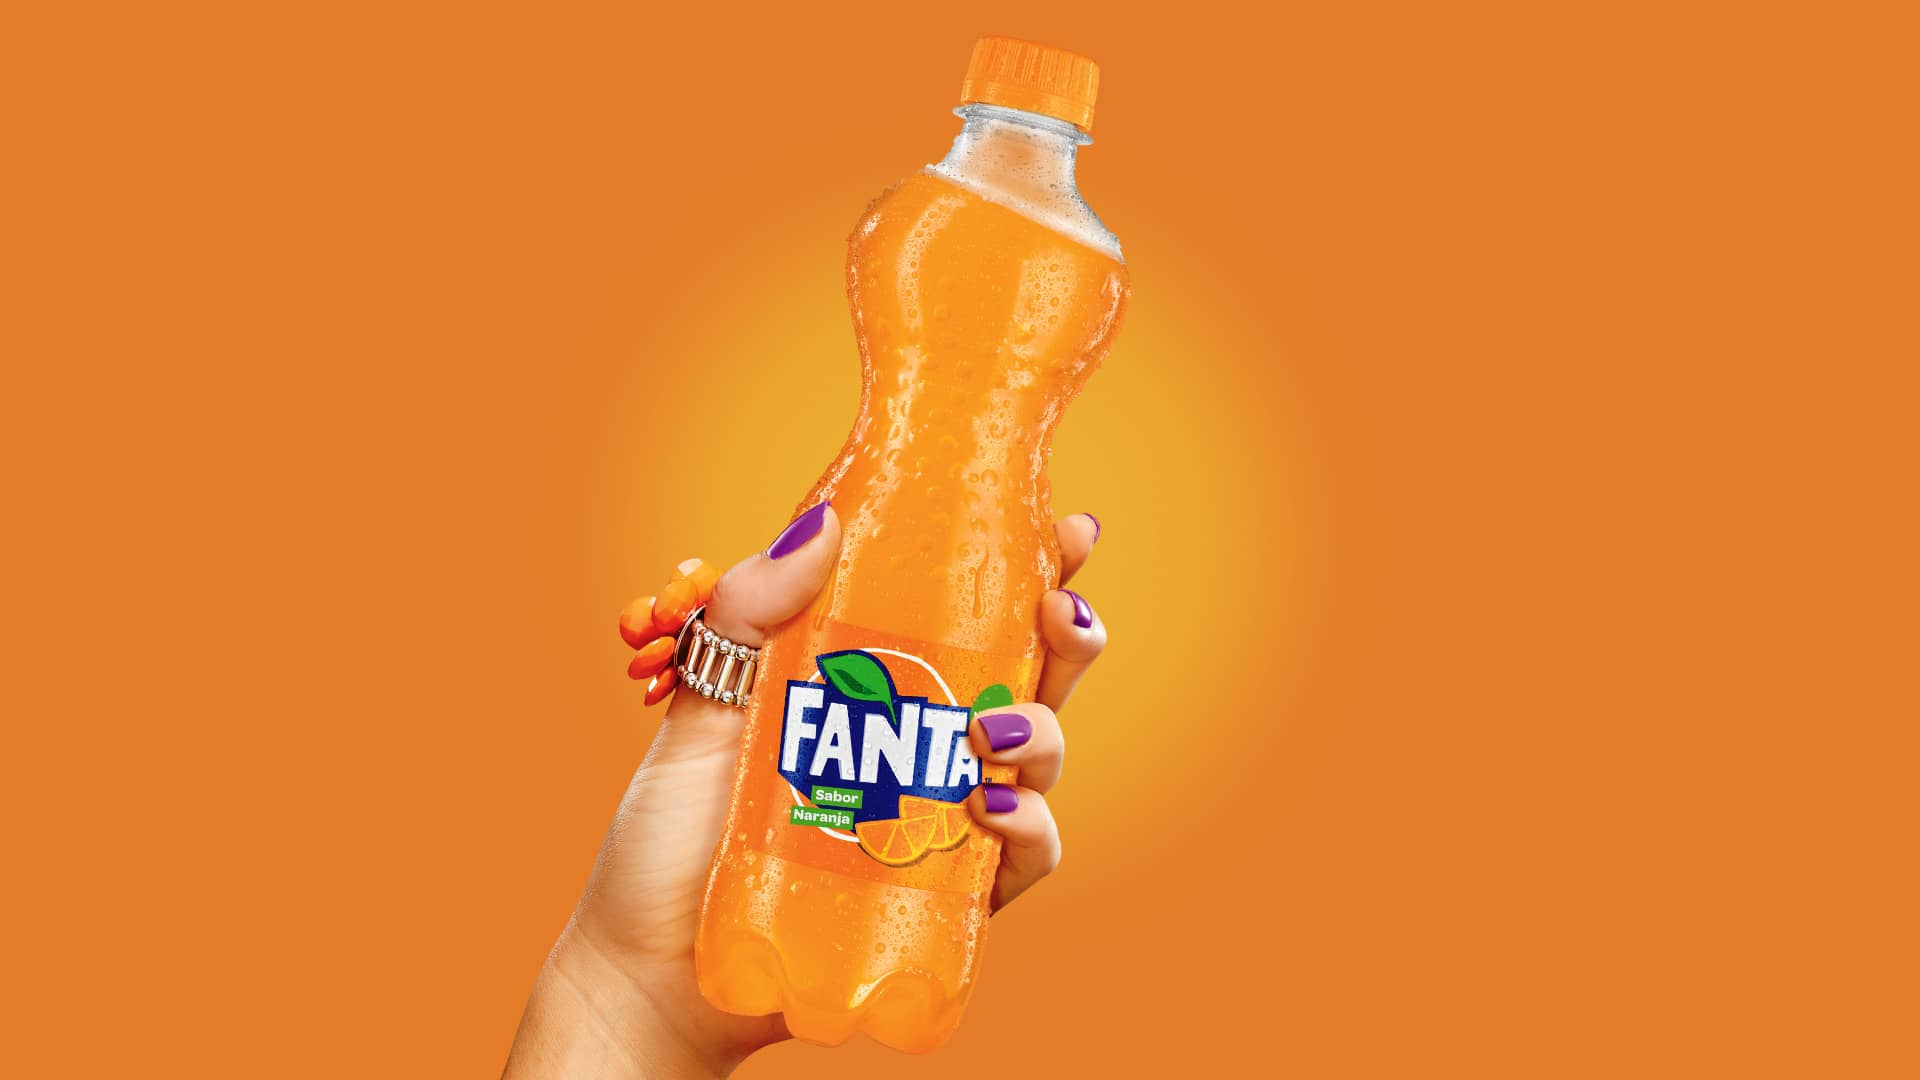 Fanta Ganem Group